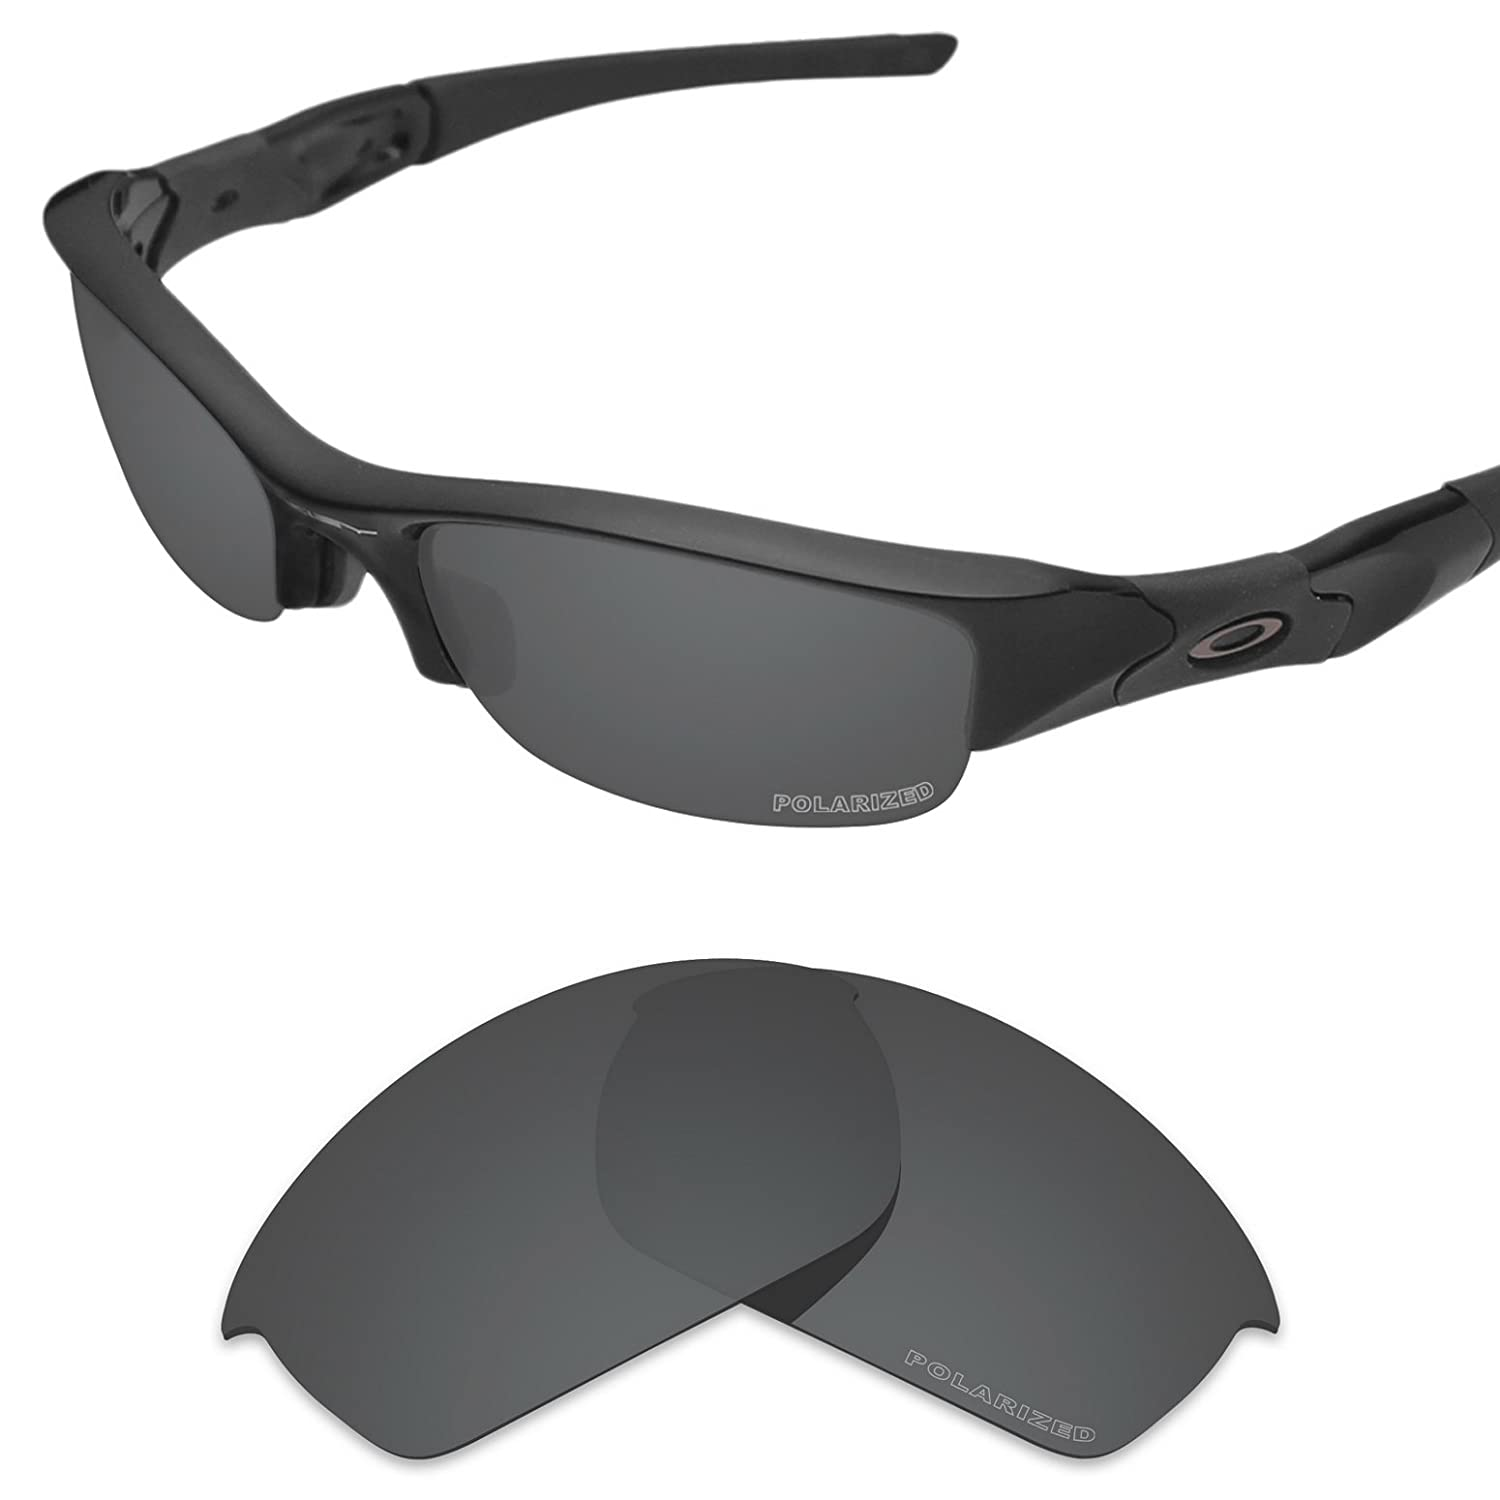 ee4c222a63d Amazon.com  Tintart Performance Lenses Compatible with Oakley Flak Jacket  Polarized Etched-Carbon Black  Clothing